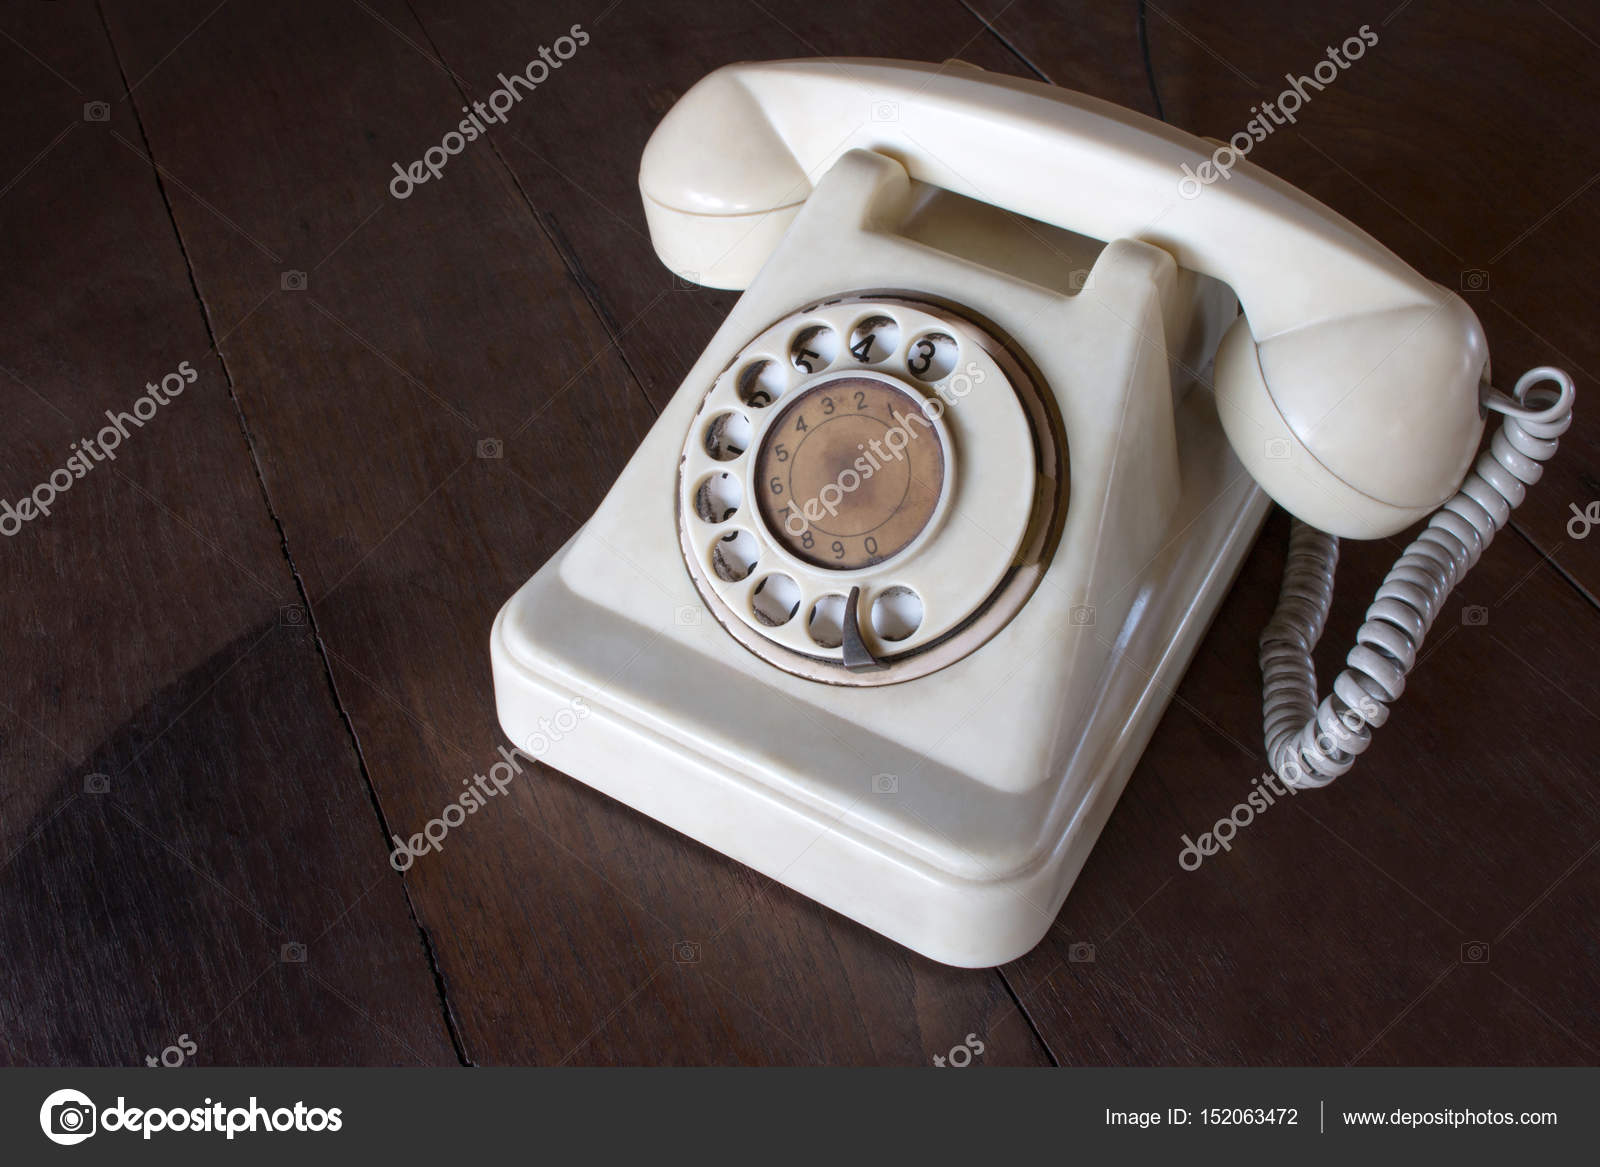 Old White Phone With Dust Circle Dial Pad And Scratches On Wooden Retro Desk Vintage Telephone Concept Photo By Wittayayut